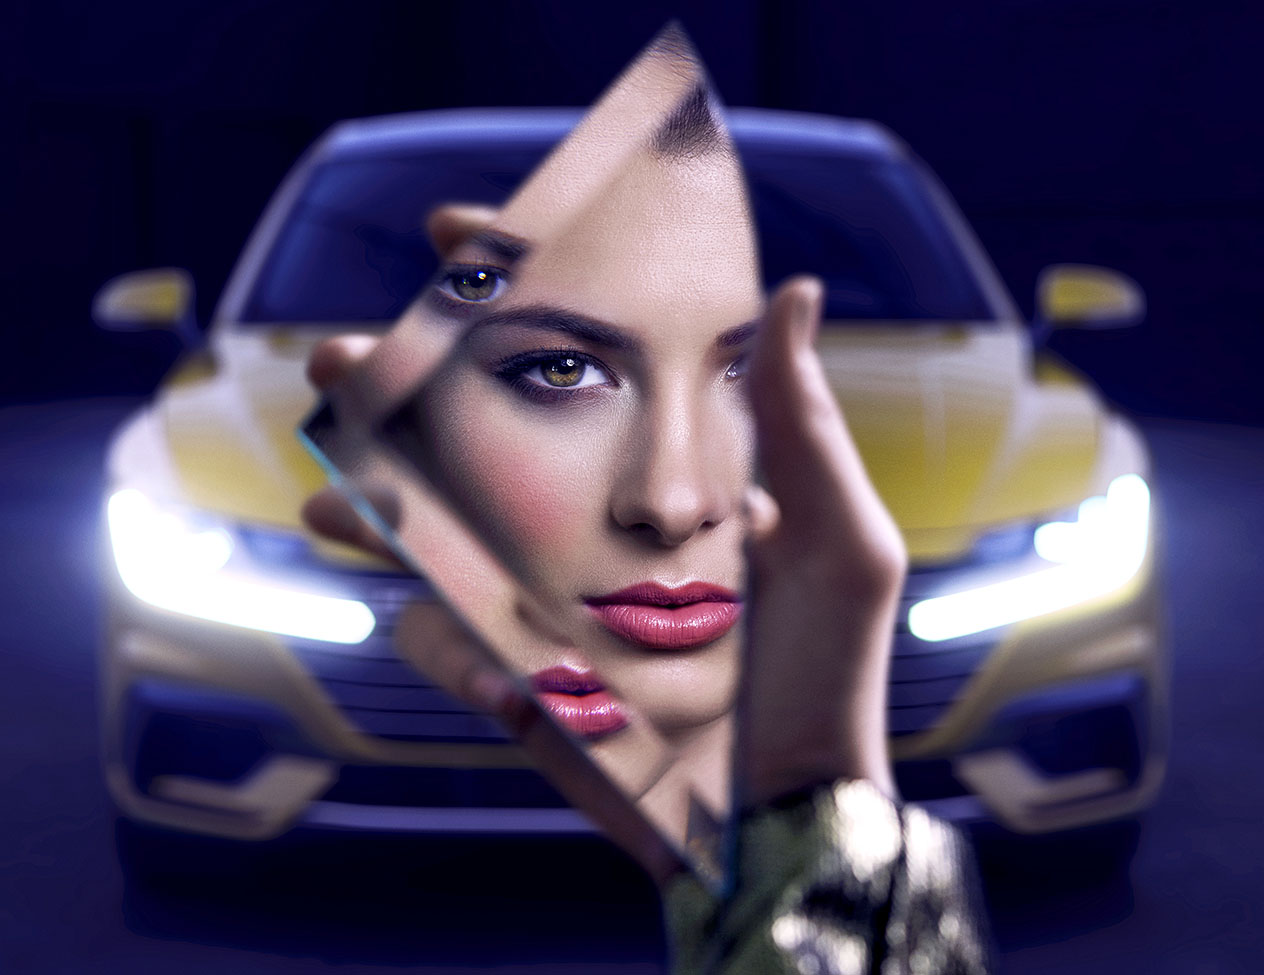 Volkswagen Interactive Art - eXeX created an augmented reality art series for the debut of Volkswagen's new flagship Arteon sedan. Visitors to the art show would open the event app and point their smart devices at a piece of art, which would activate an interactive 3D experience.